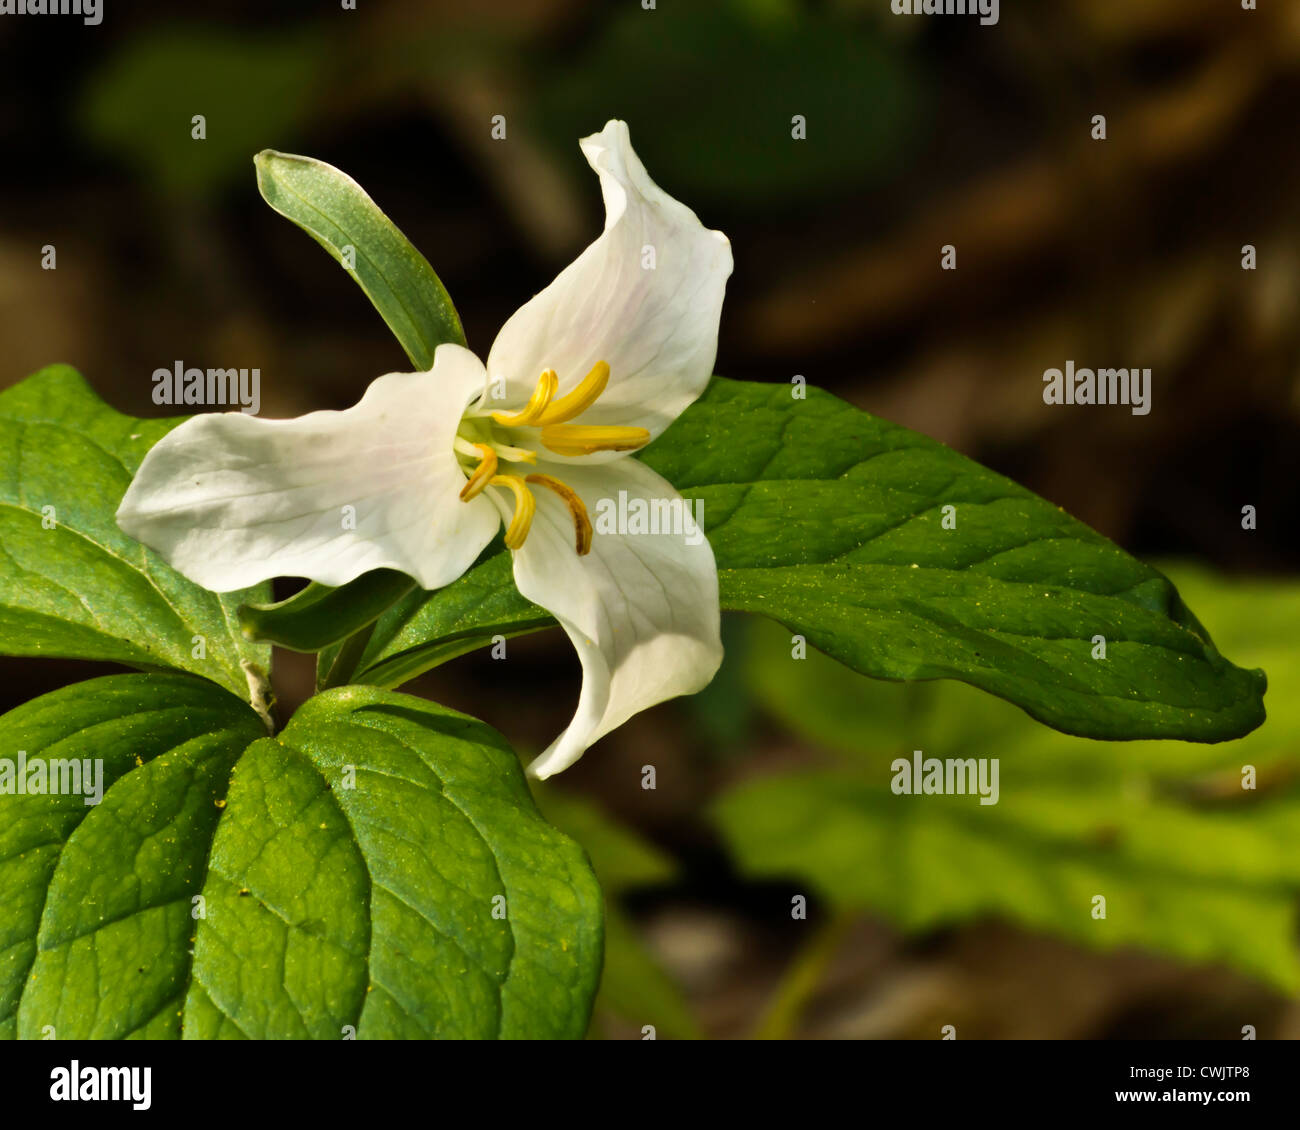 White Trillium Flower Stock Photos White Trillium Flower Stock